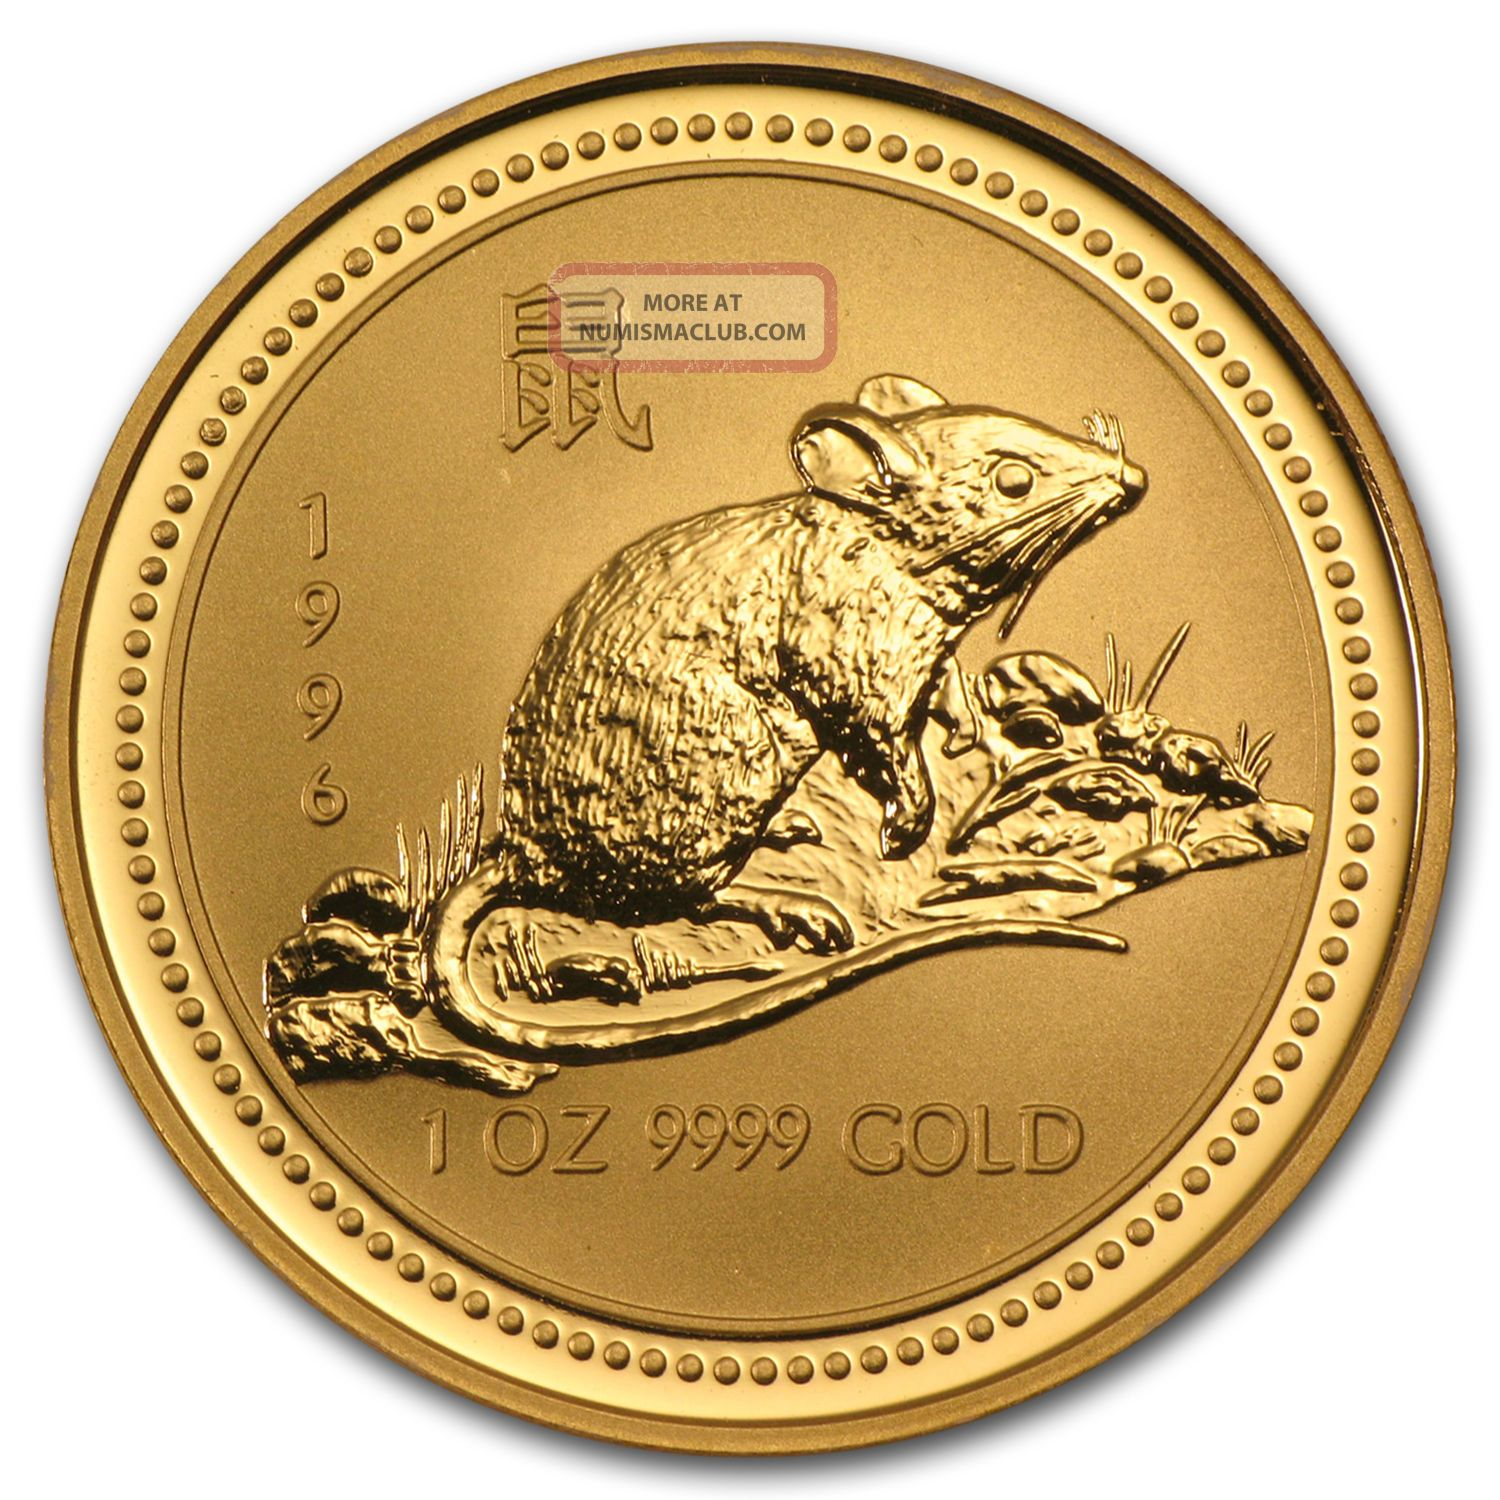 1996 Australia 1 Oz Gold Lunar Rat (series I) - Sku 9007 Other Coins of the World photo